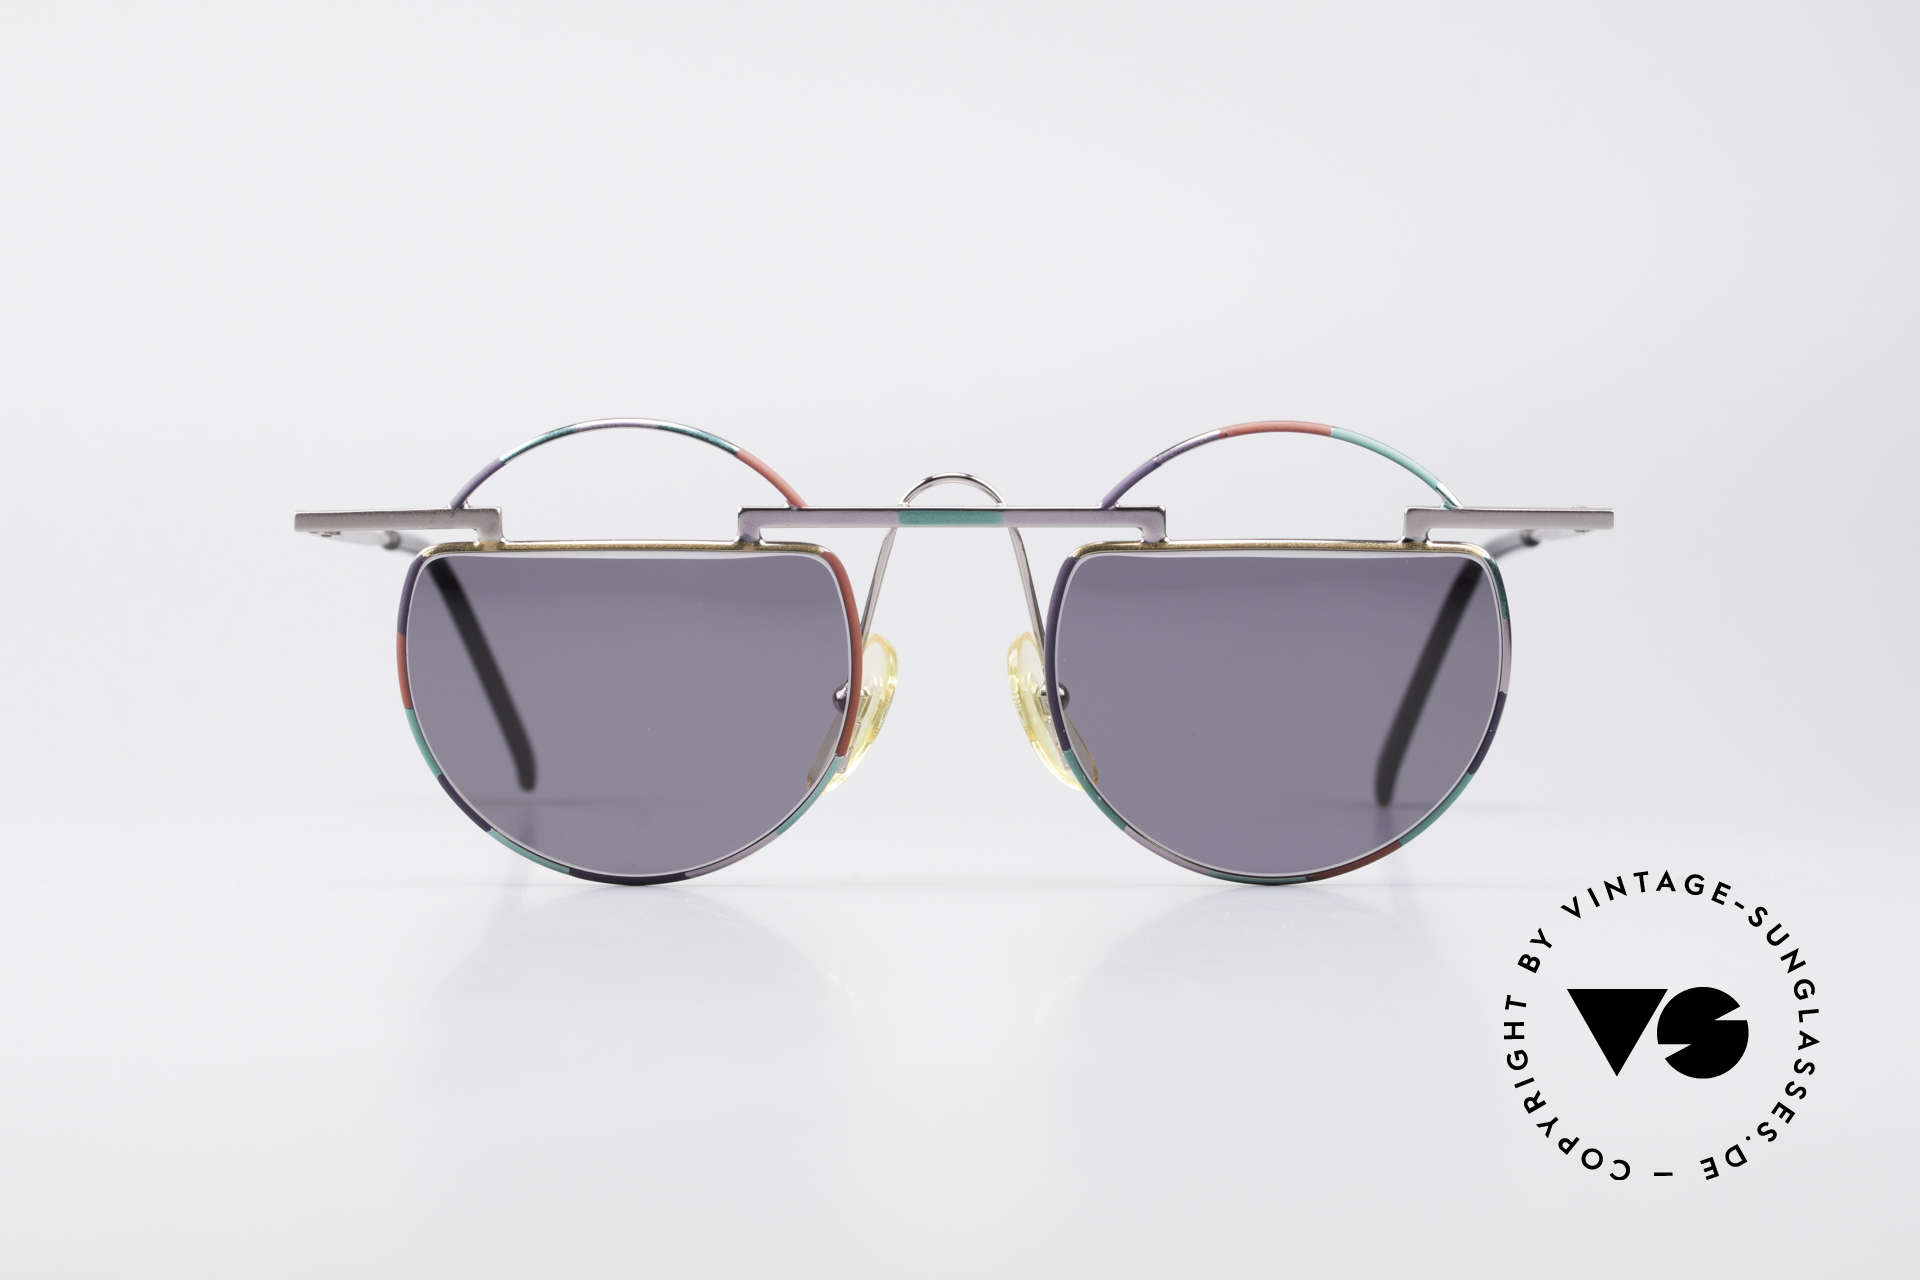 Taxi 221 by Casanova Vintage Art Sunglasses, colorful and peppy frame construction; full of verve, Made for Women